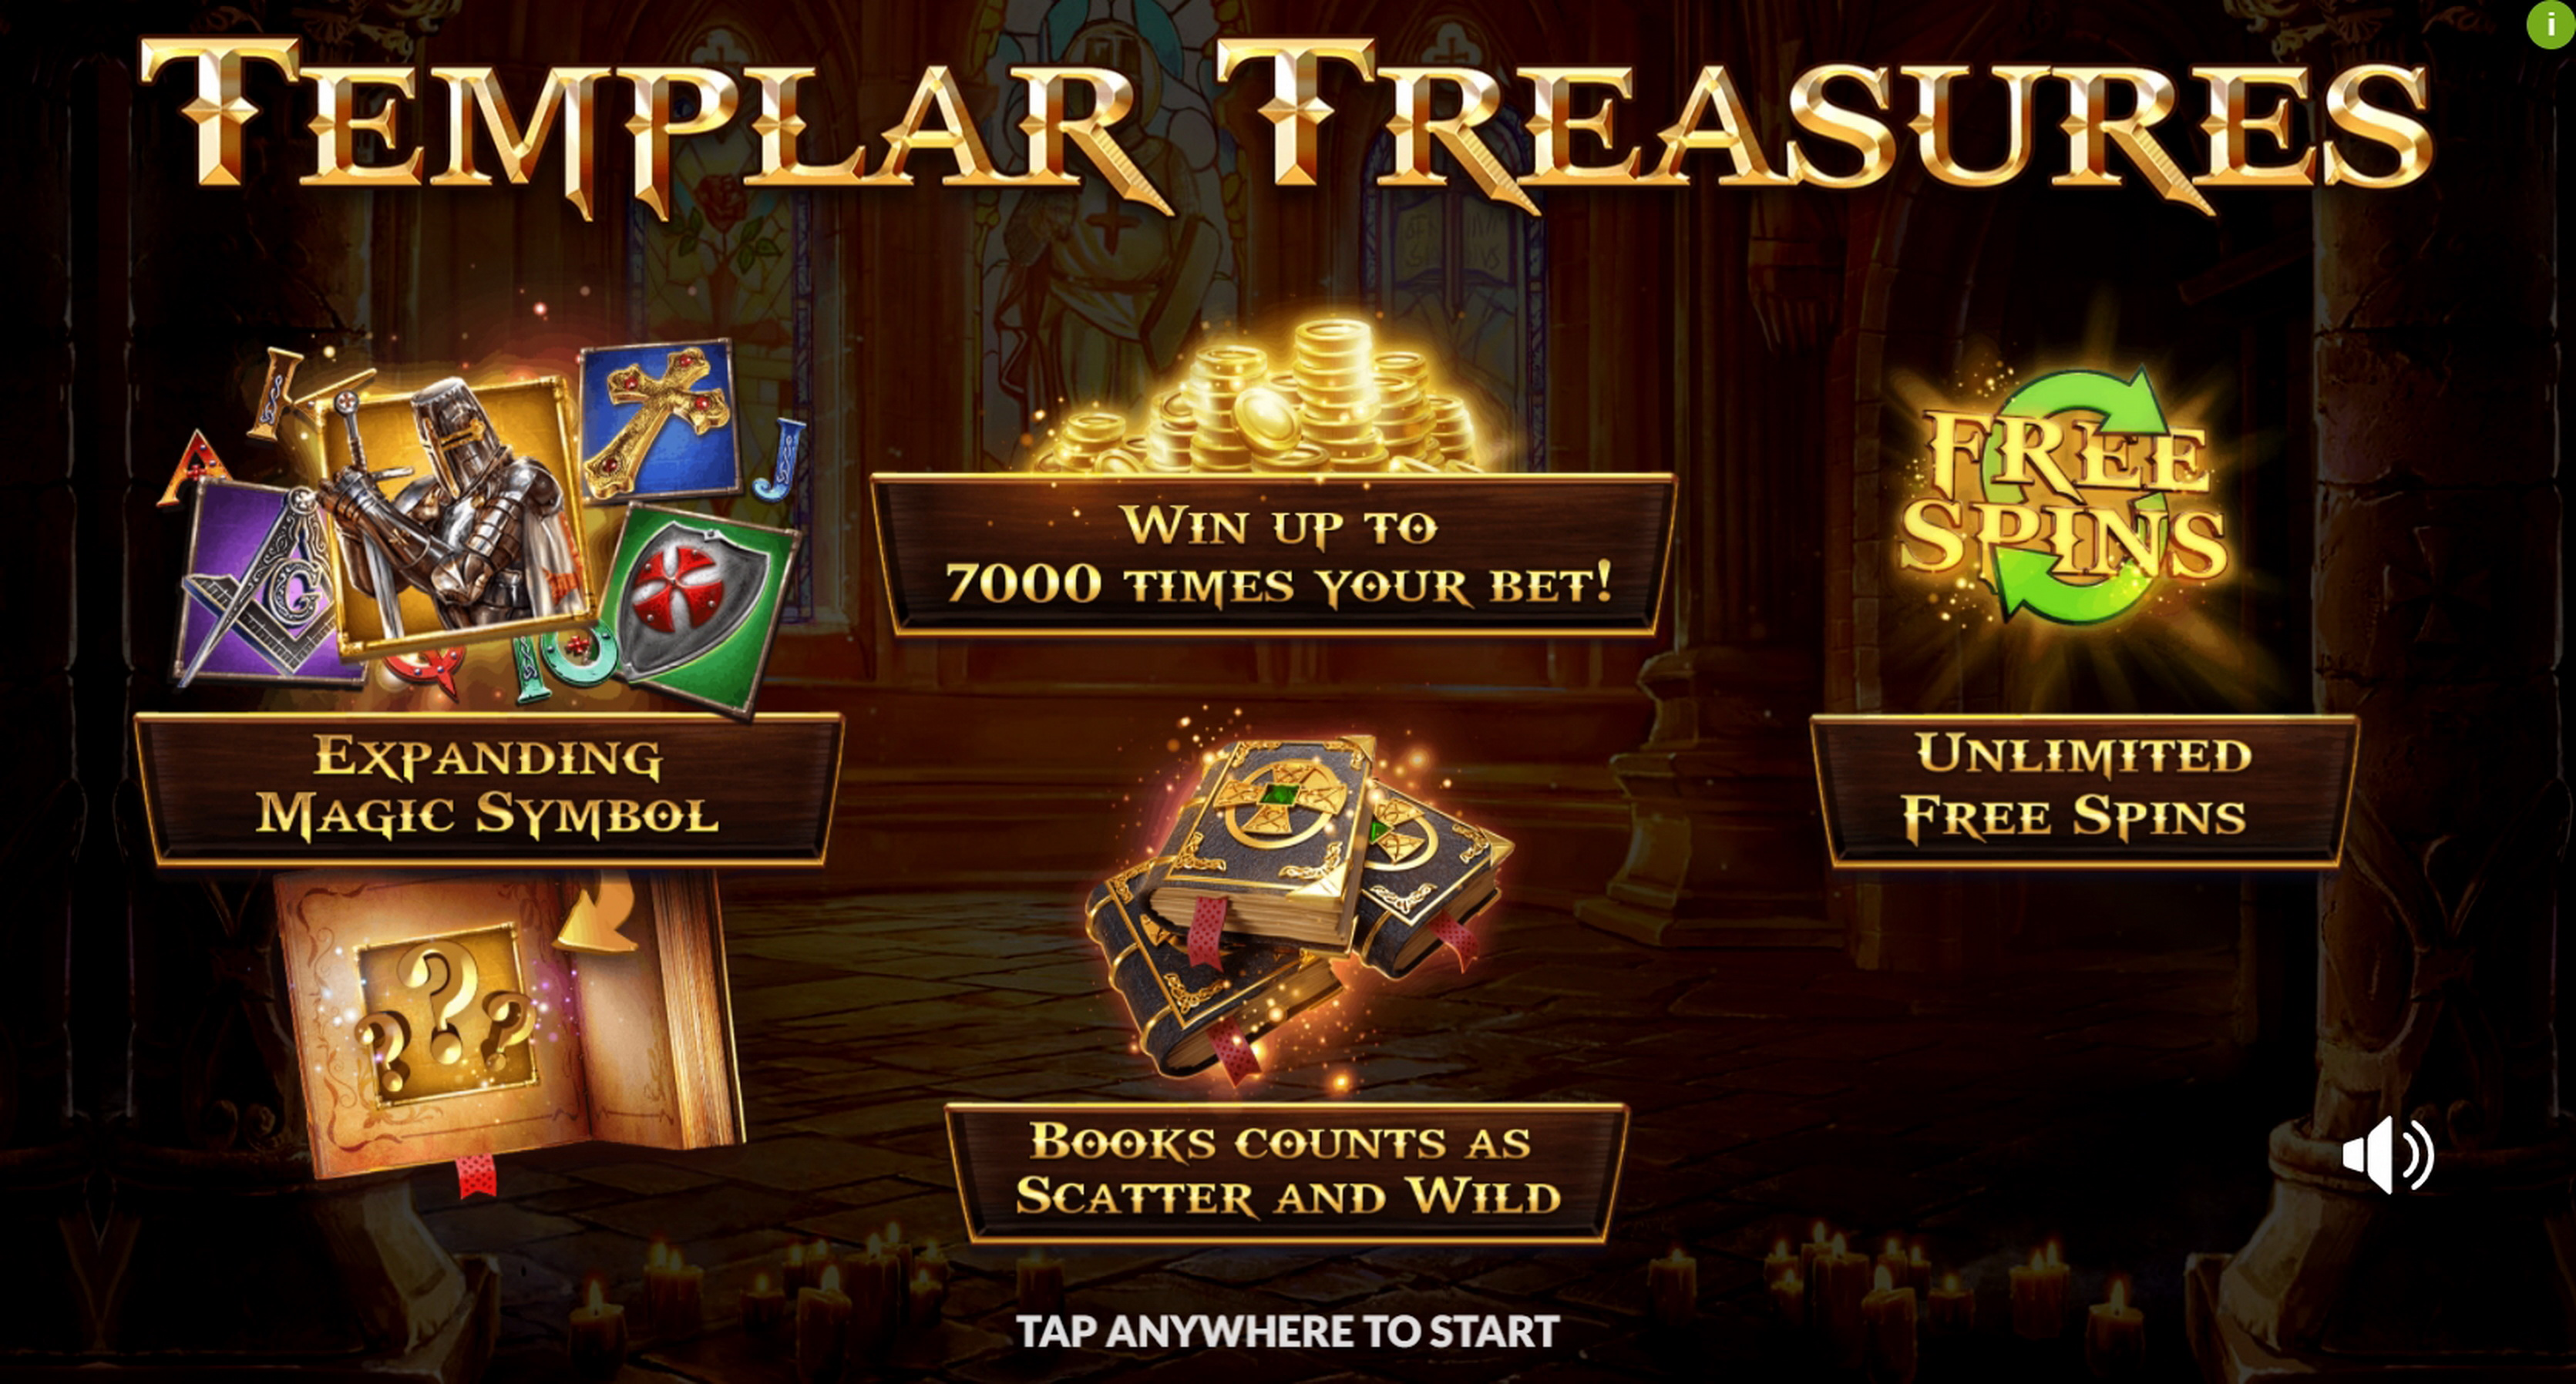 Play Templar Treasures Free Casino Slot Game by Slotmill